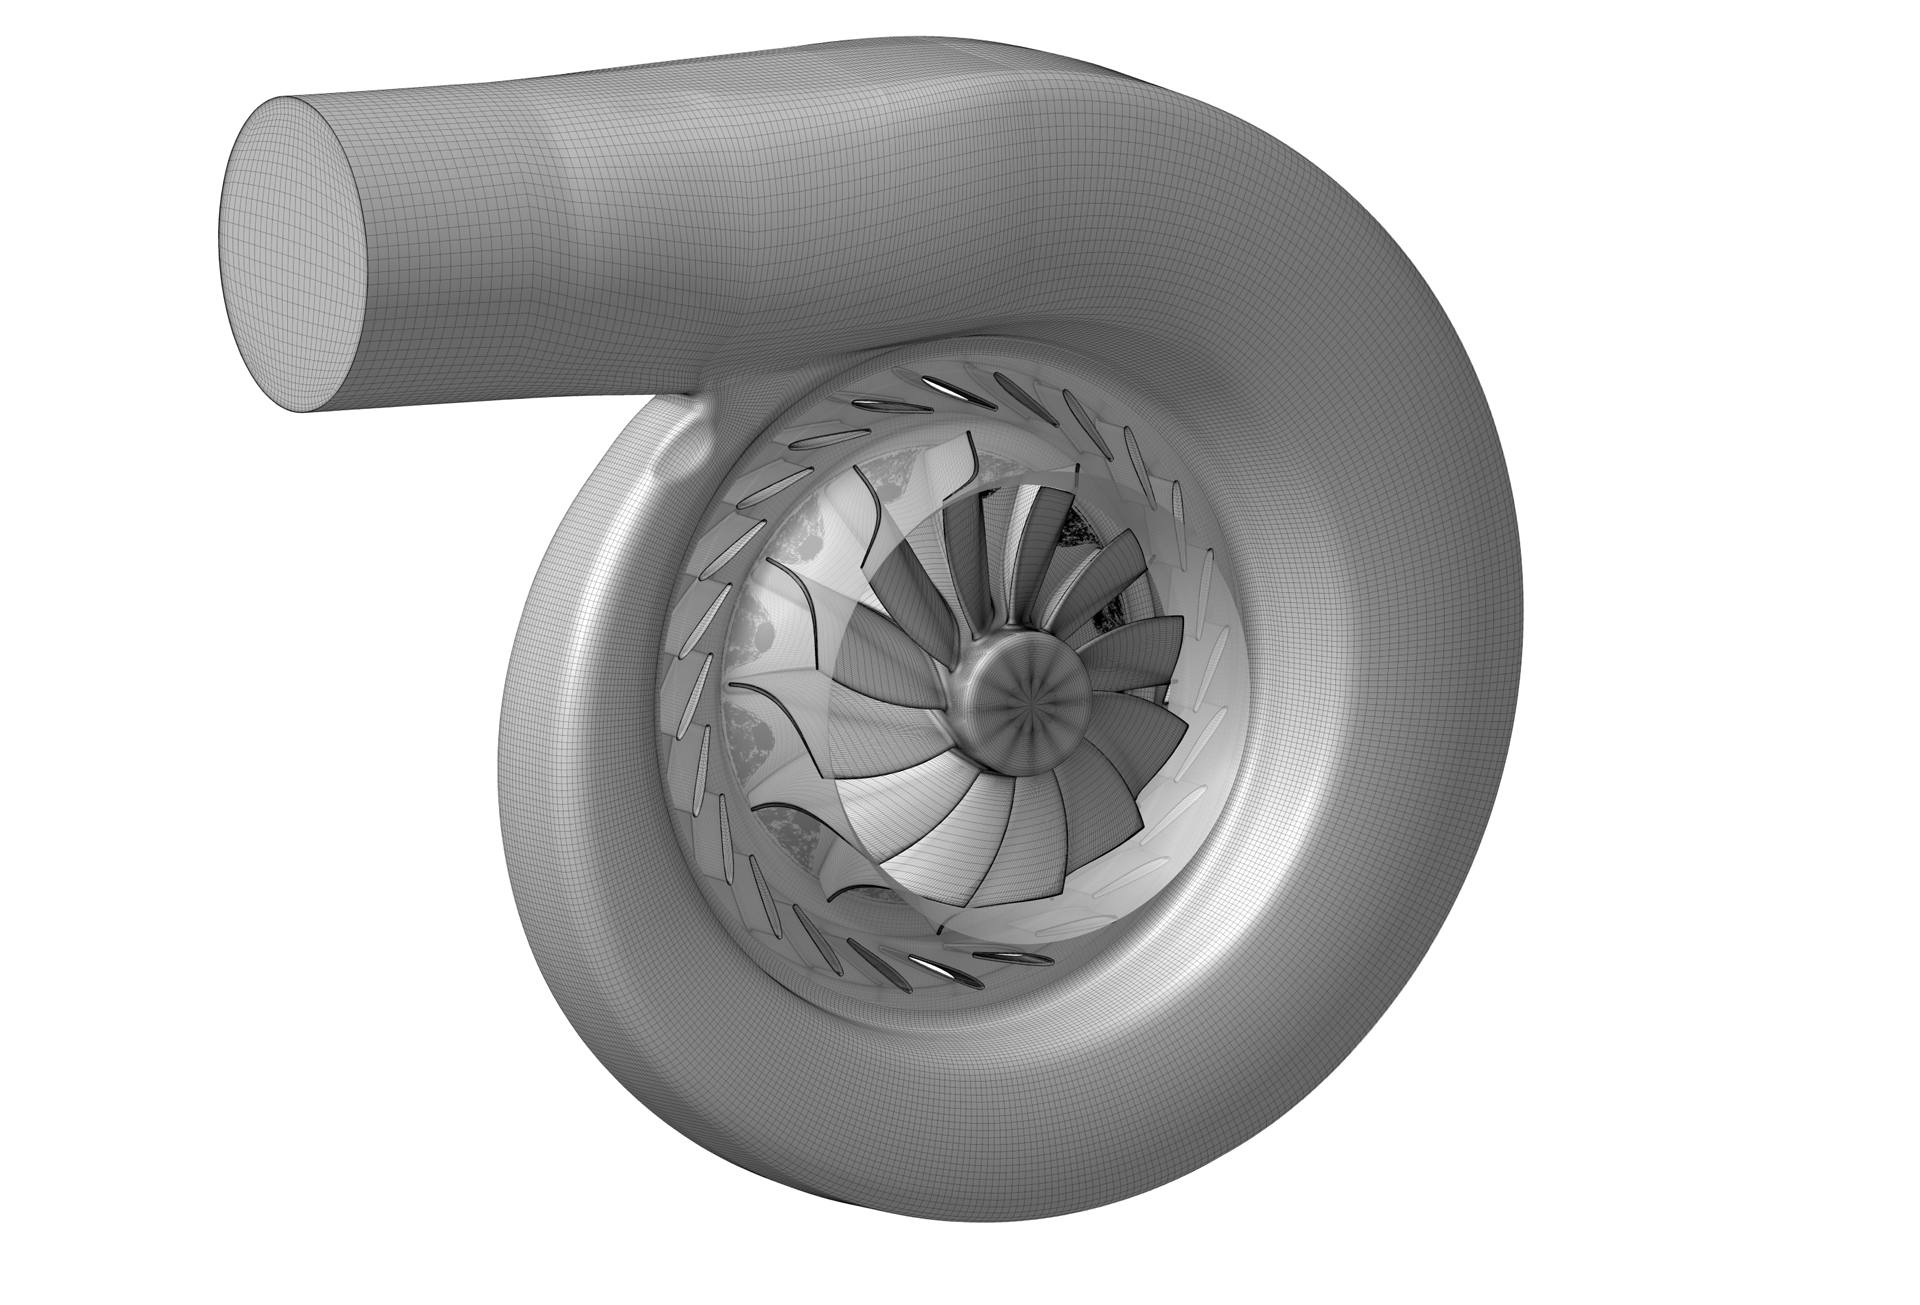 Figure 1: CFD Model of the investigated radial turbine